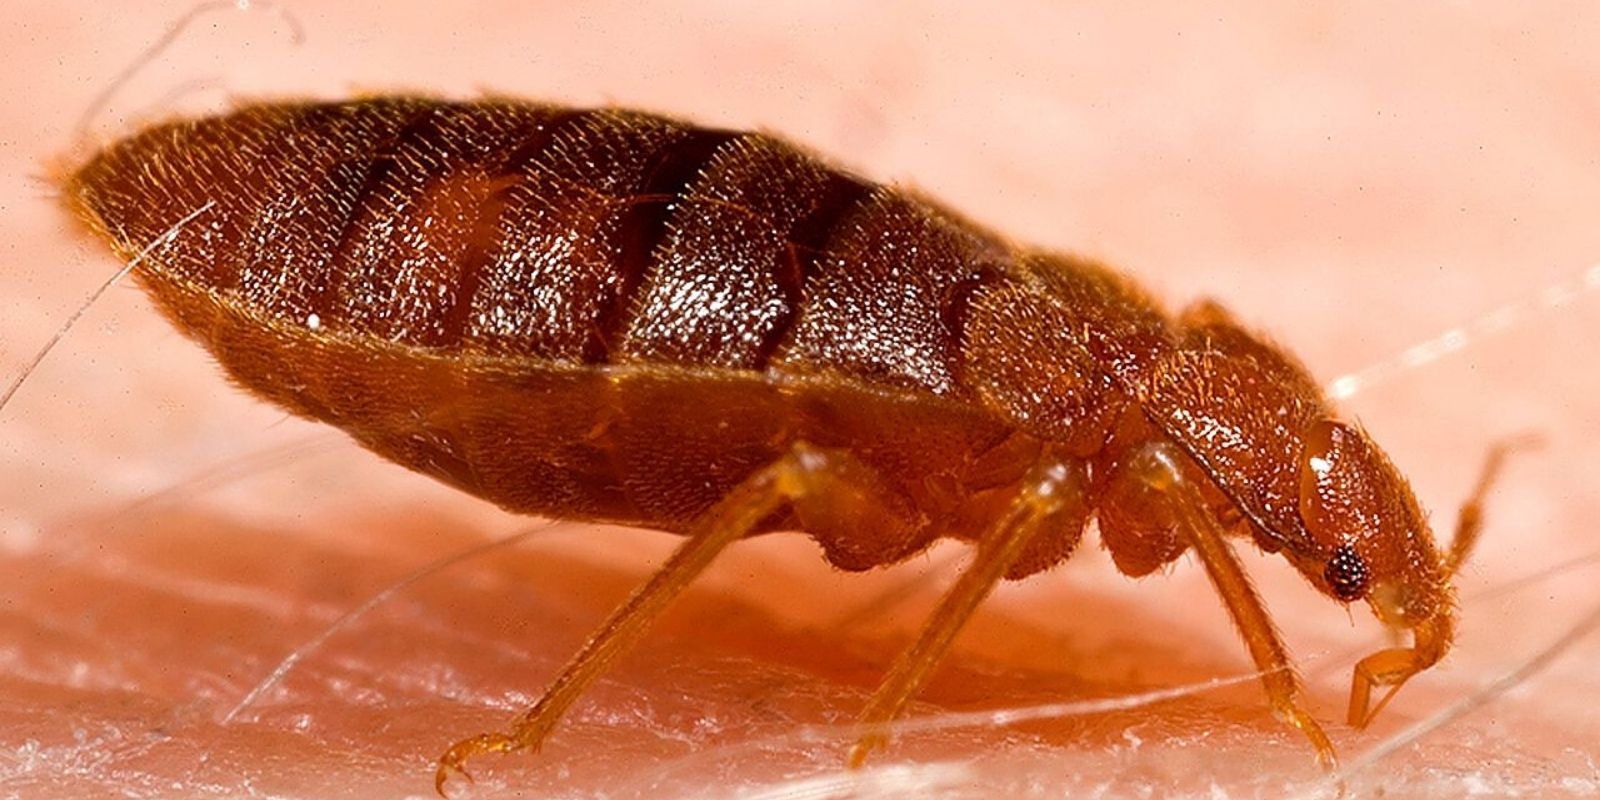 Montreal Immigration and Refugee Board forced to close down due to bed bug infestation